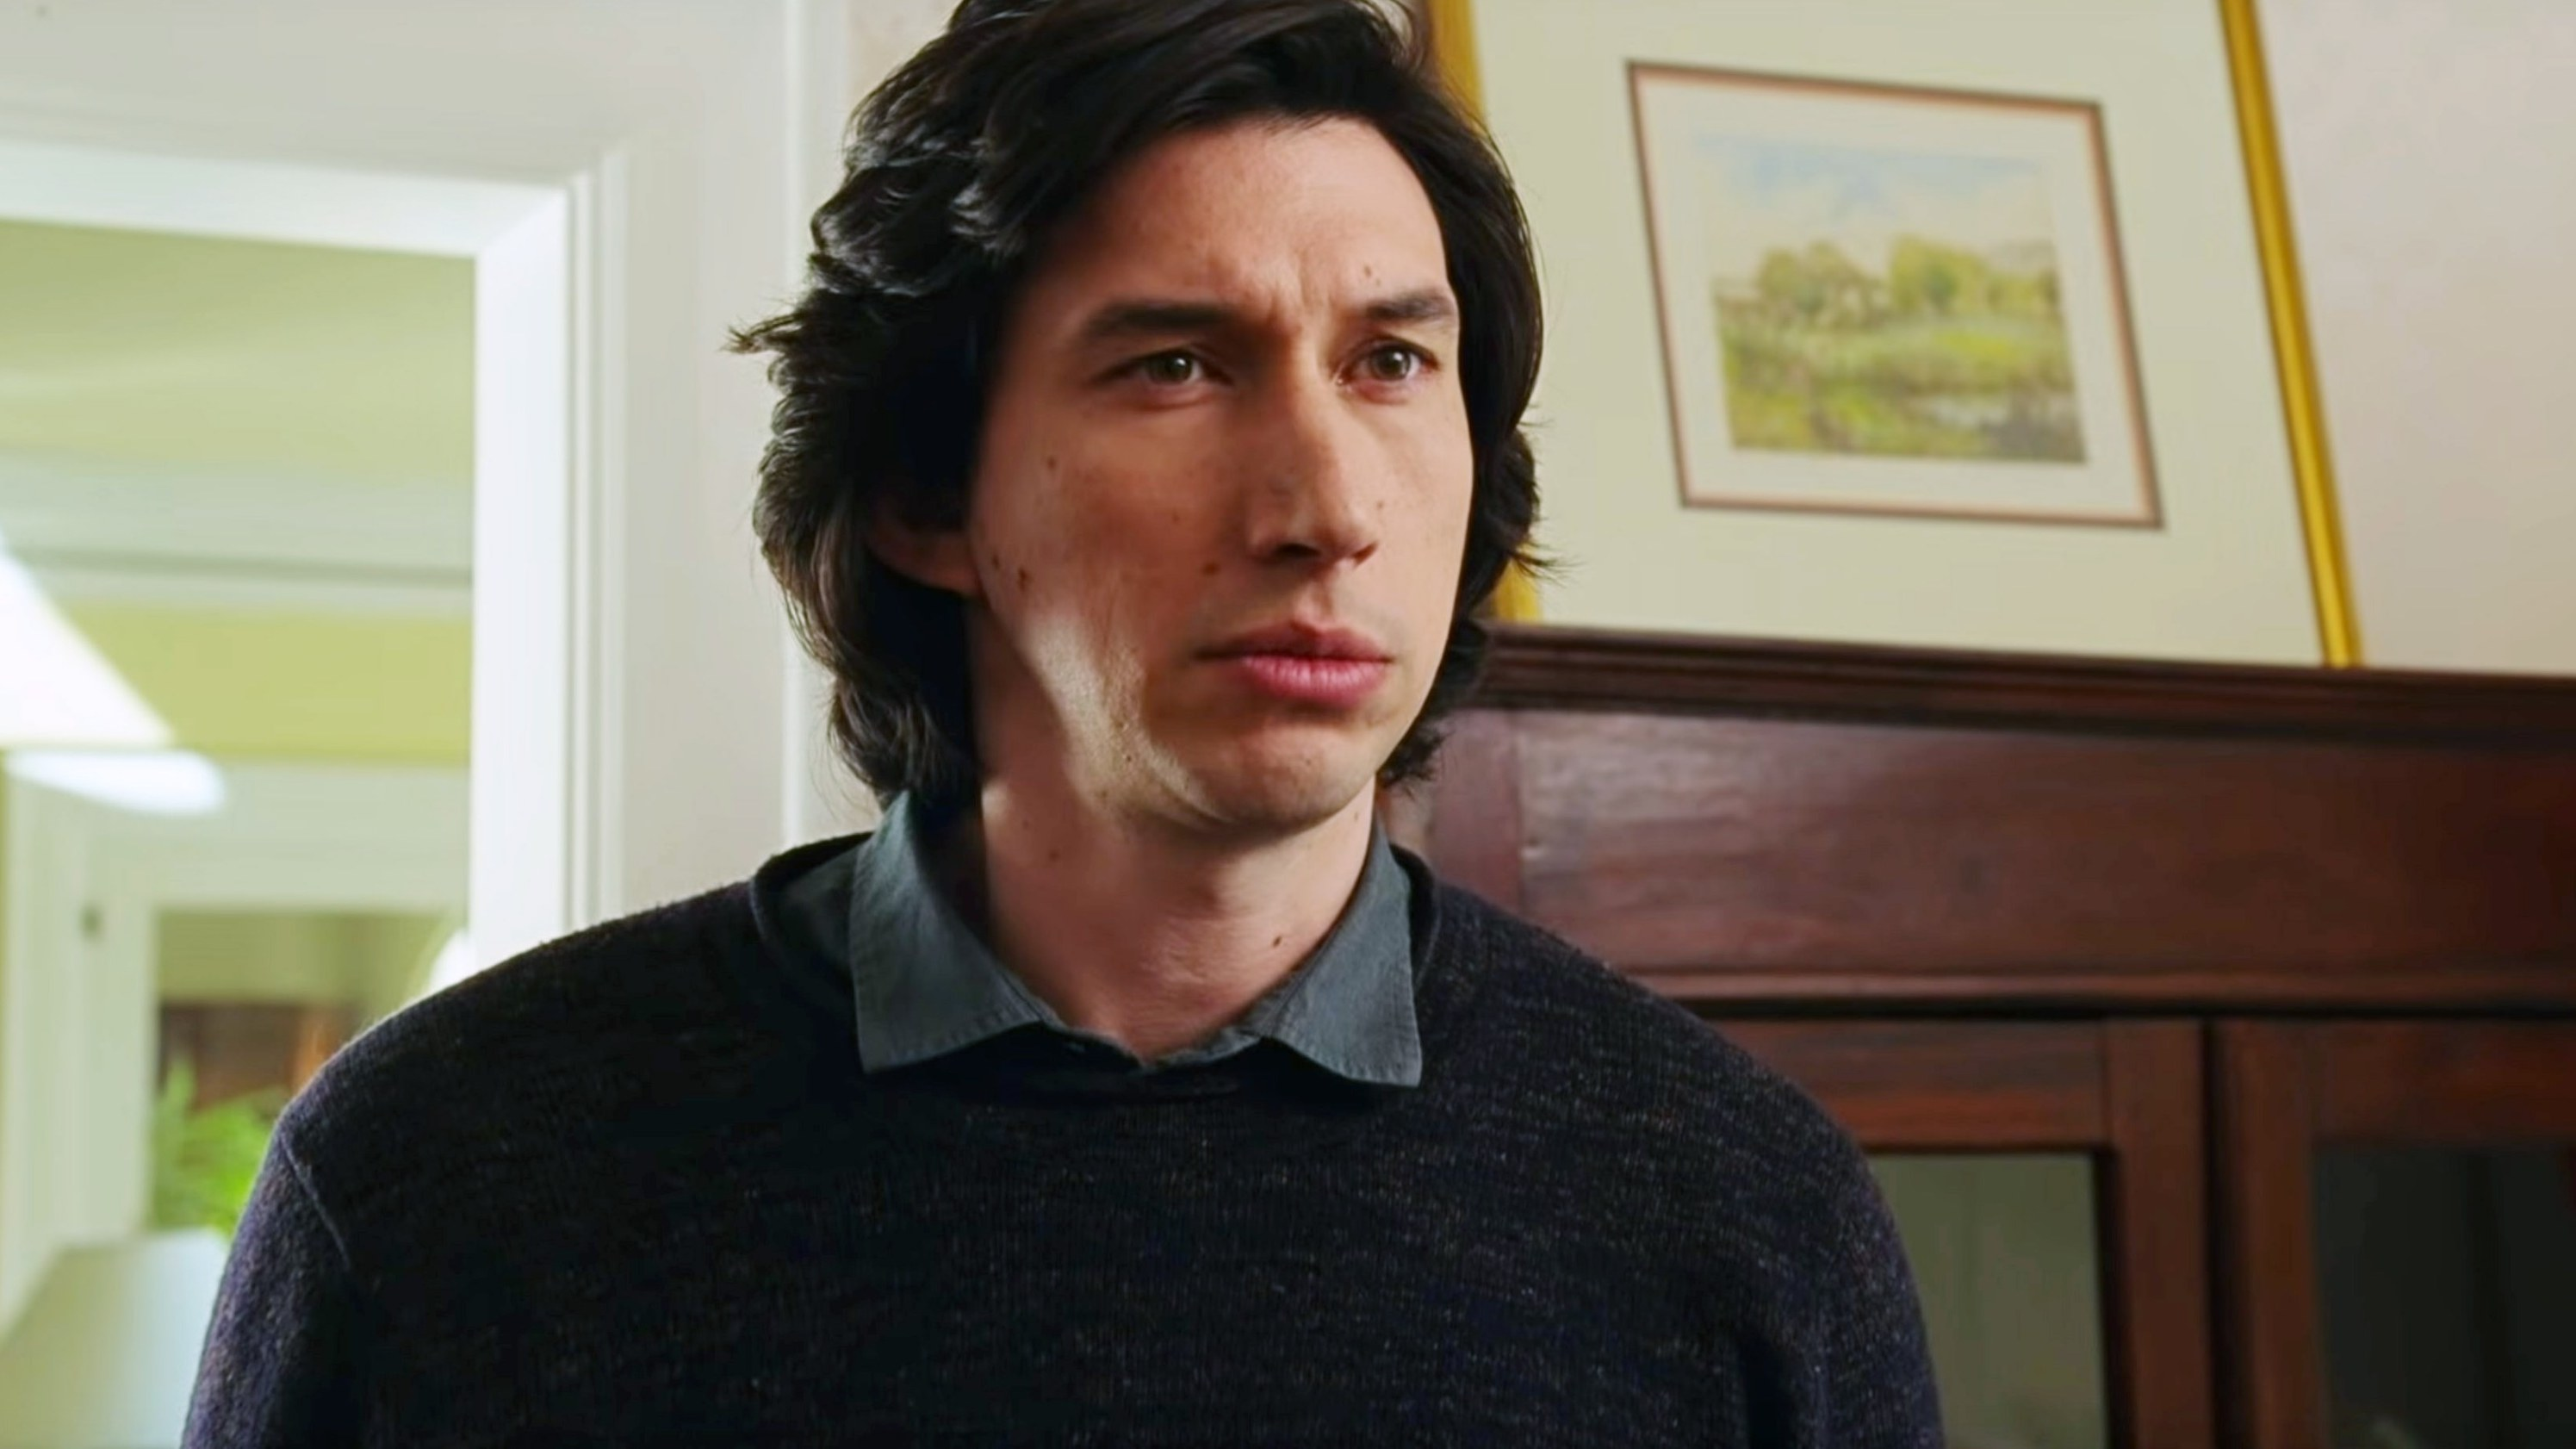 Adam Driver on His Stephen Sondheim Performance in 'Marriage Story' |  IndieWire